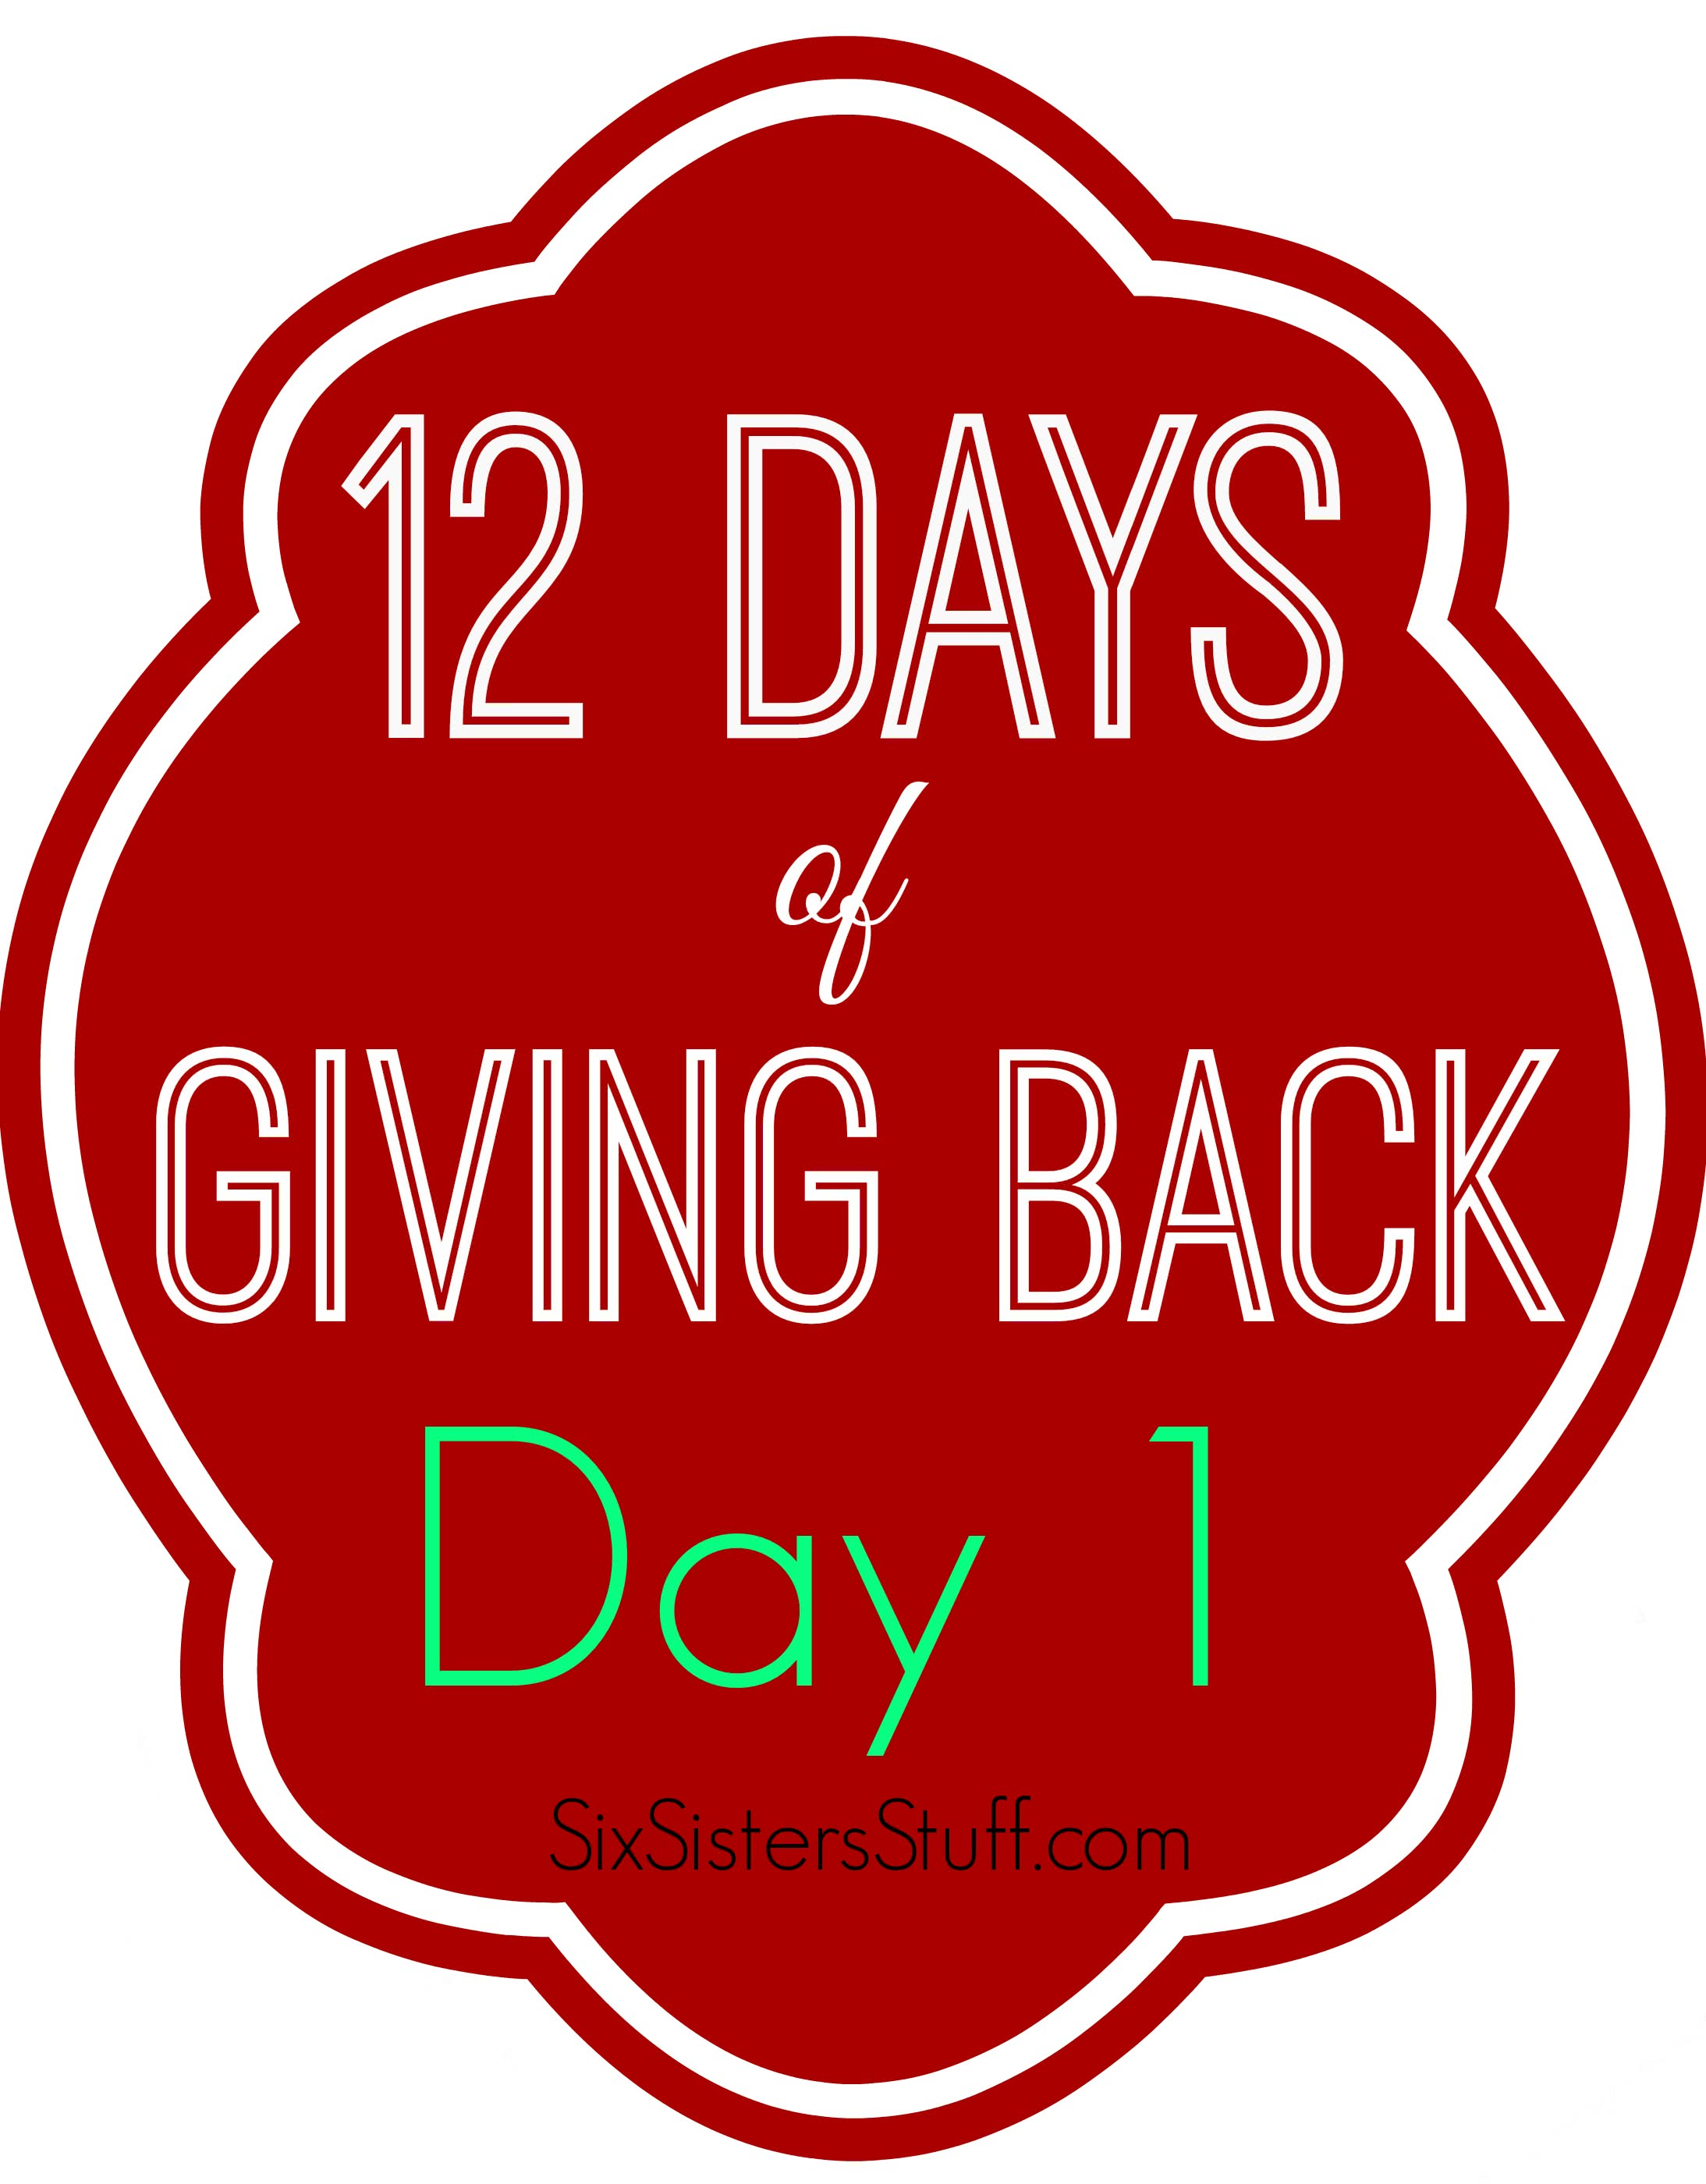 12 days of giving back - day 1